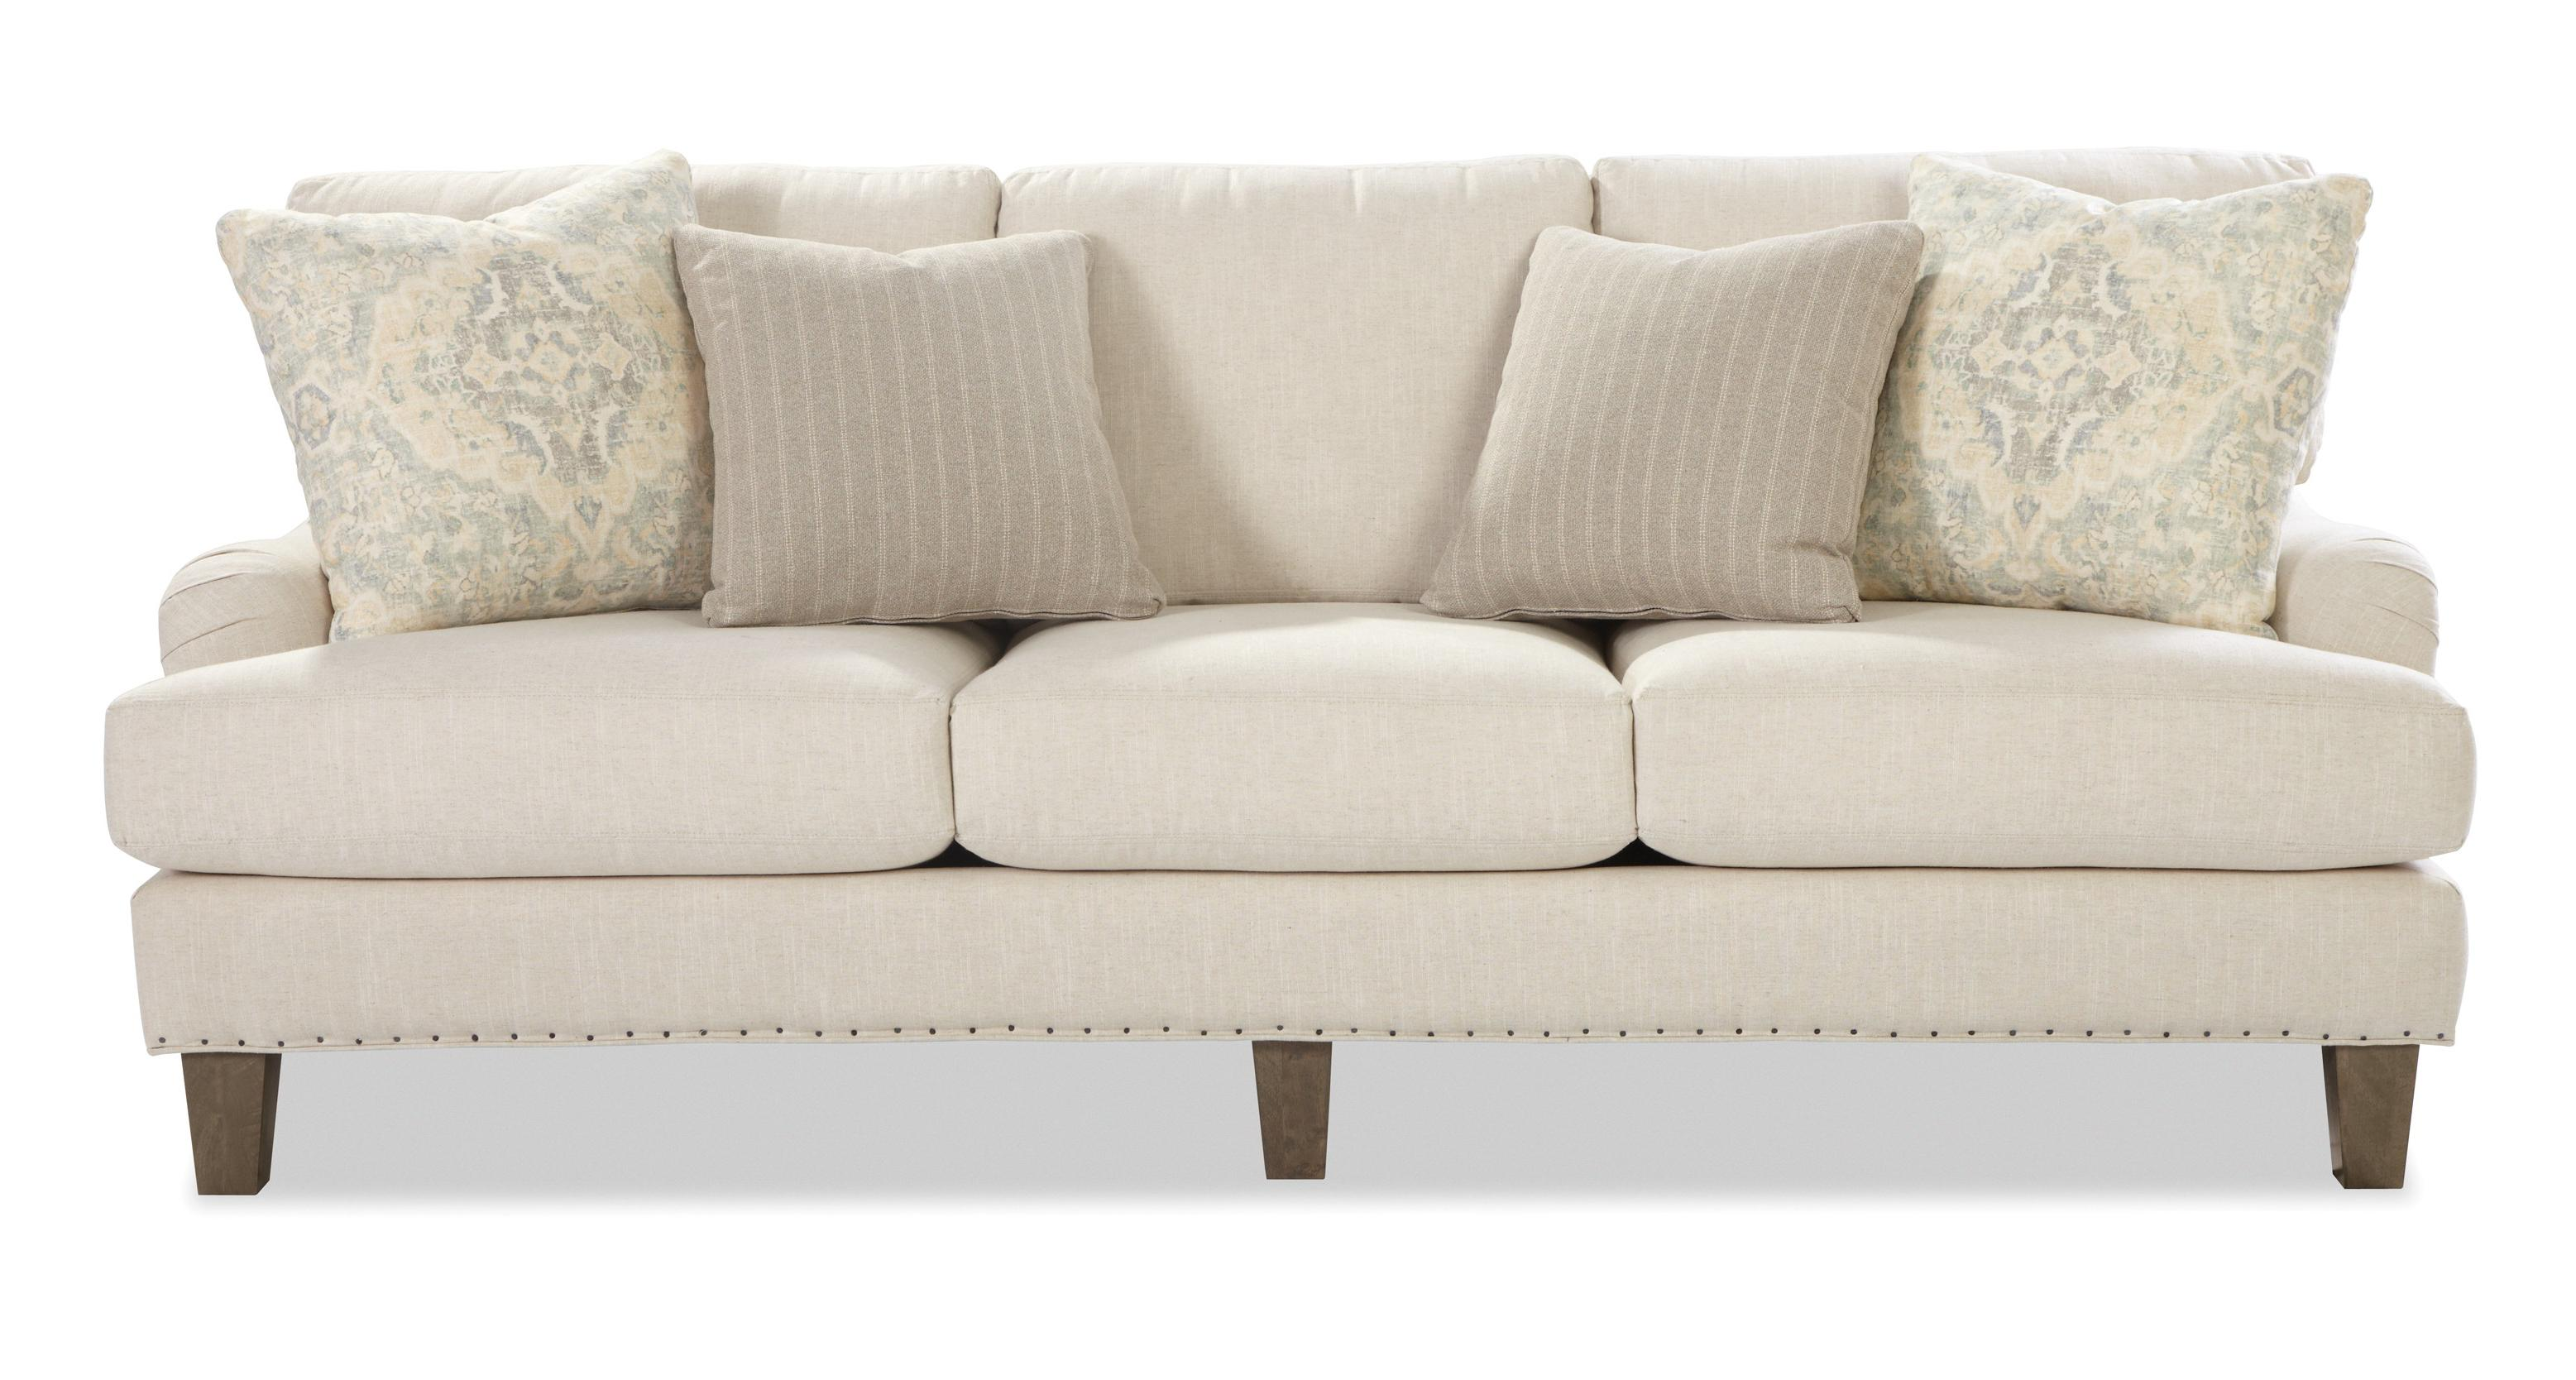 Ellie Sofa by Craftmaster at Belfort Furniture